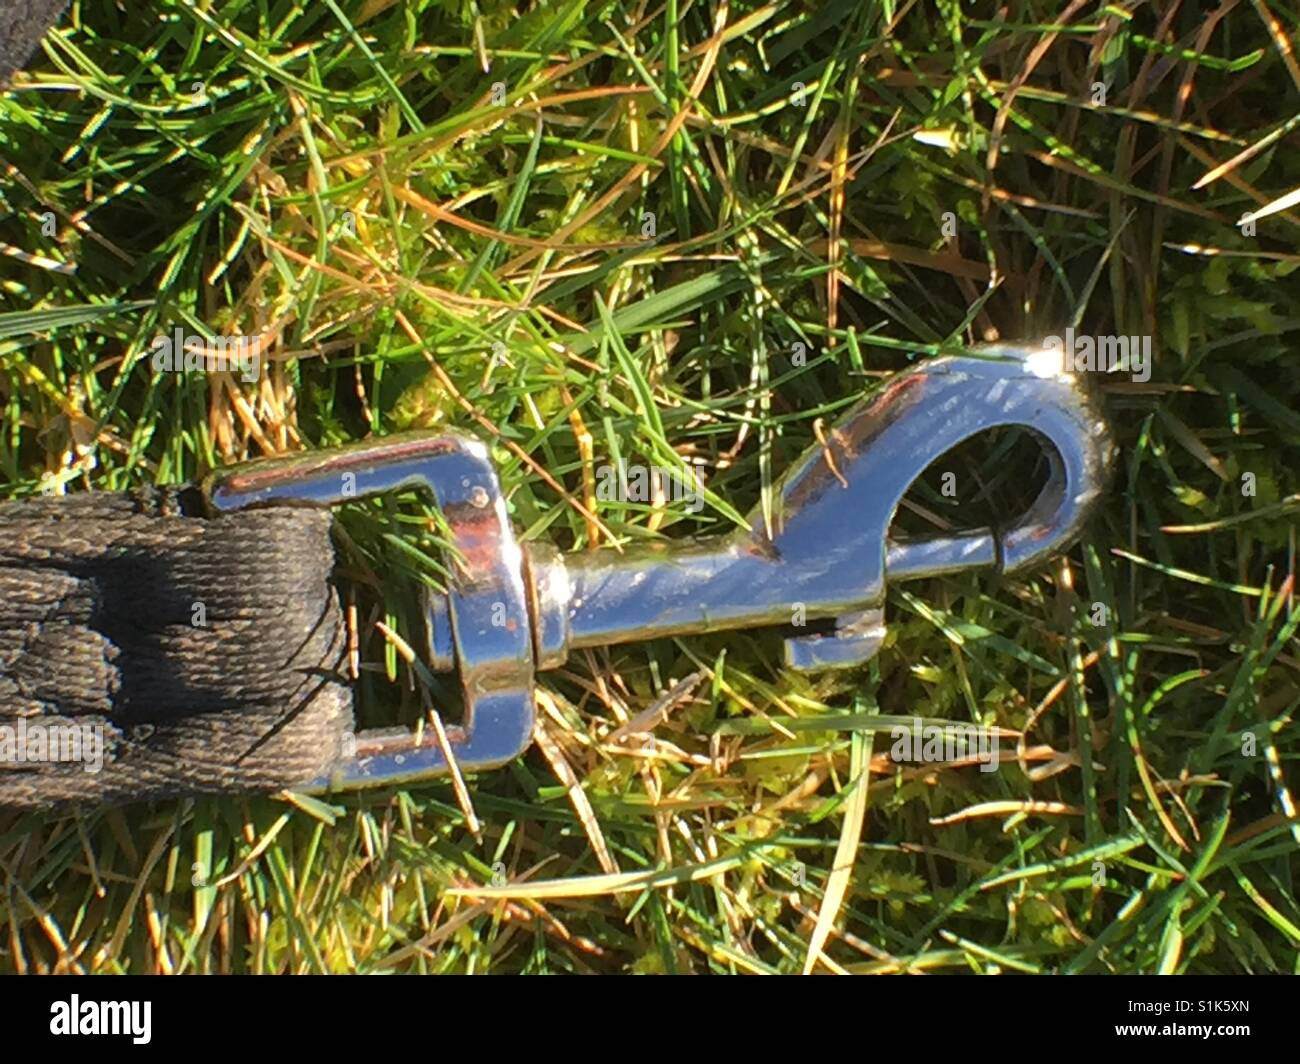 Dog clip in grass - Stock Image